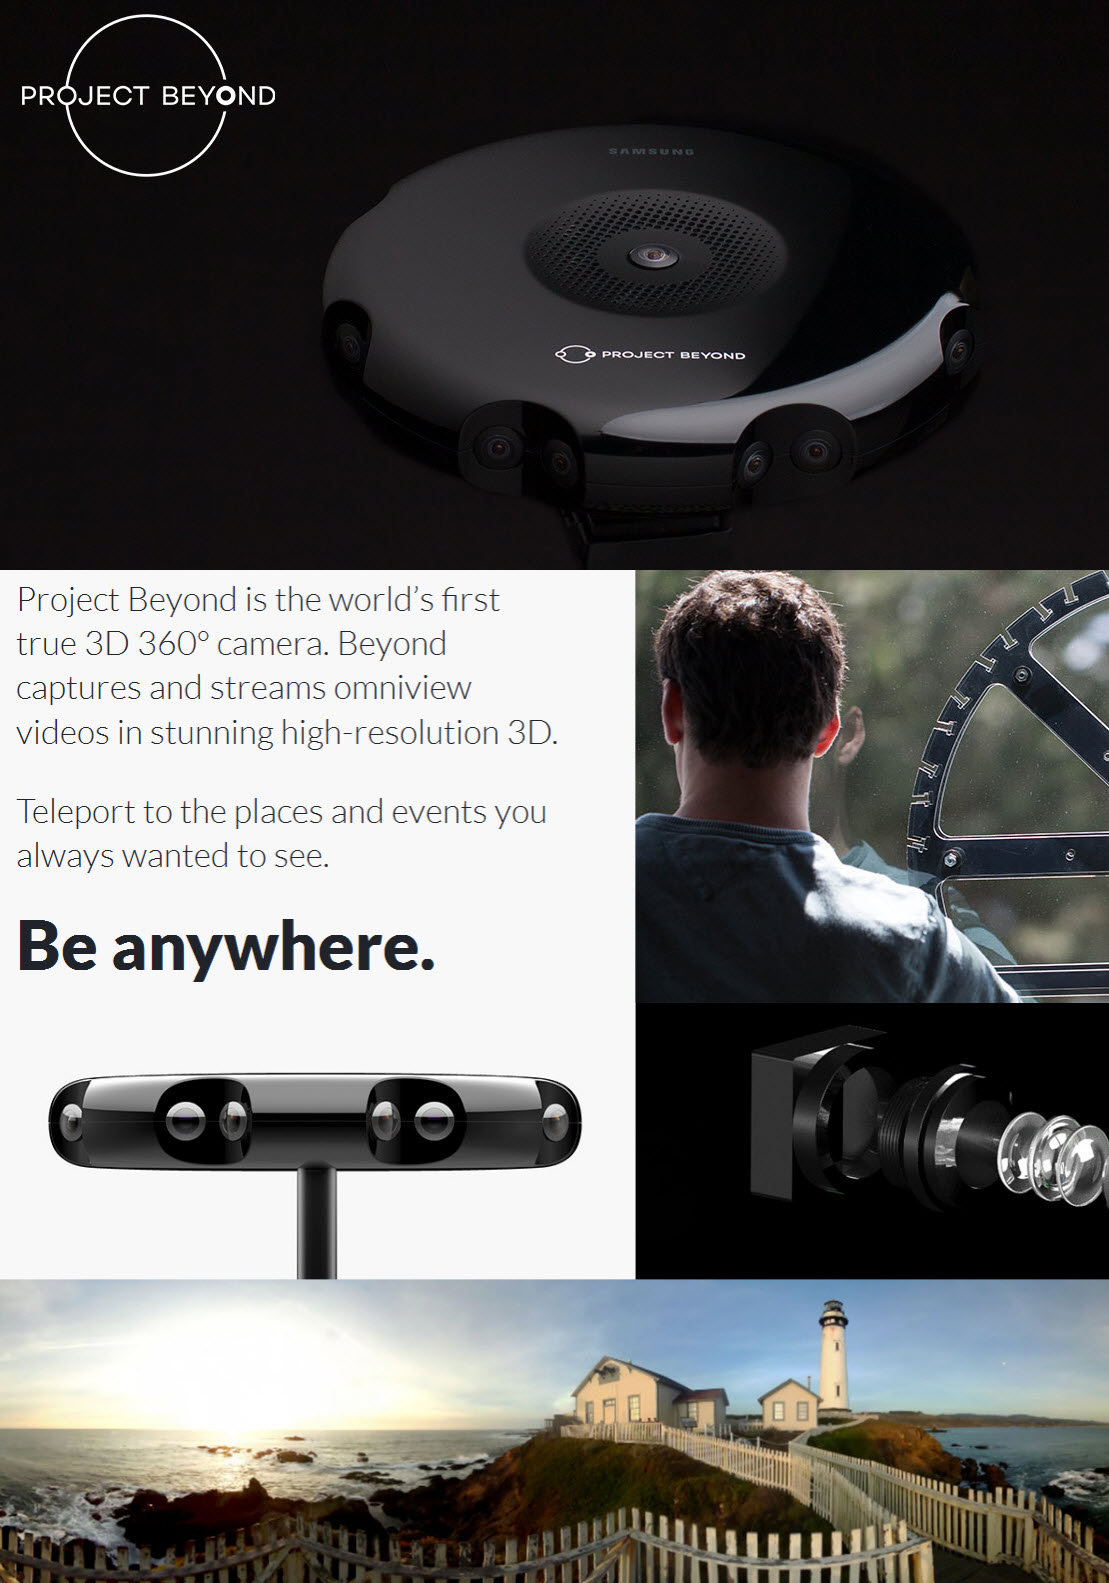 Samsung Project Beyond